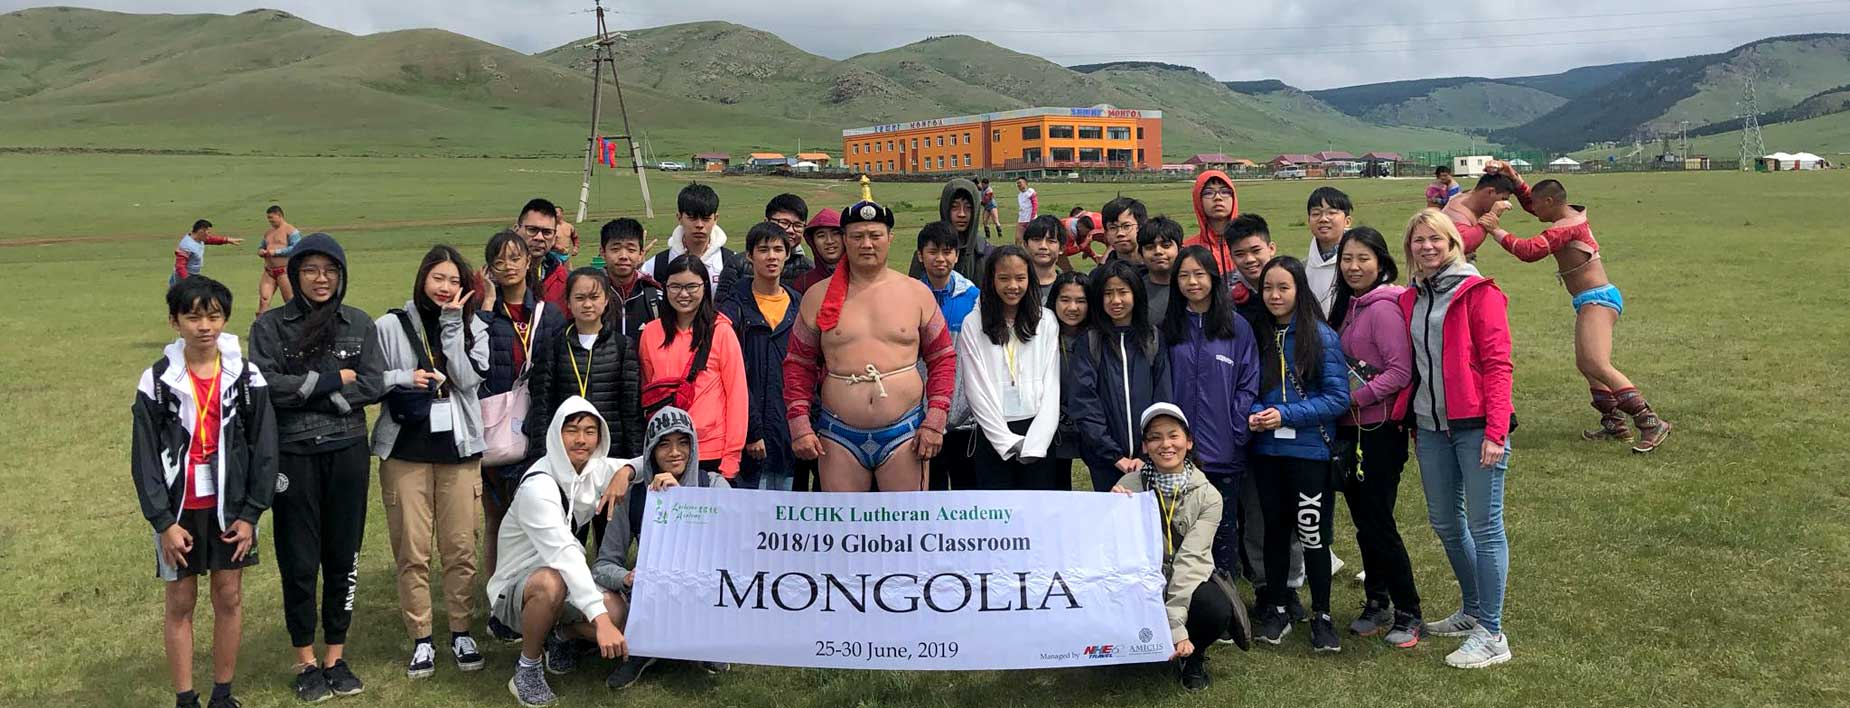 Educational or School tour to Mongolia